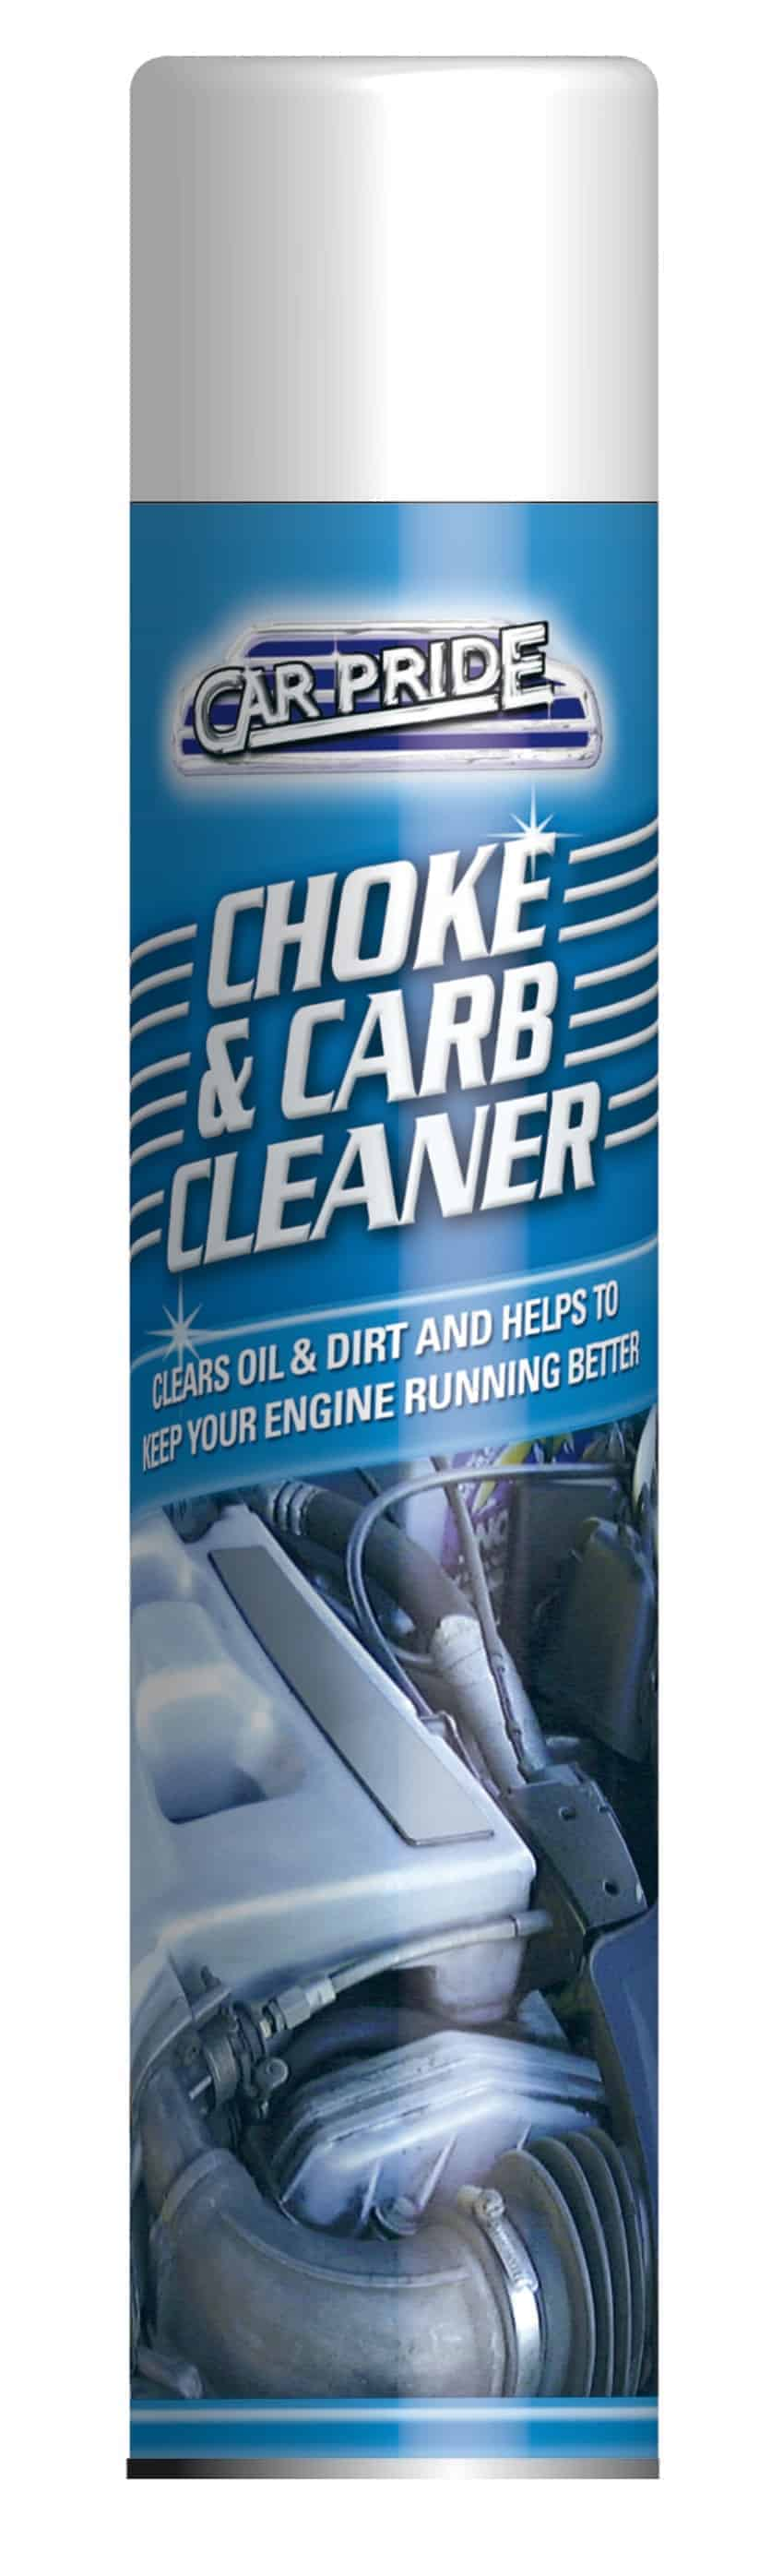 Carpride 300ml Choke & Carb Cleaner